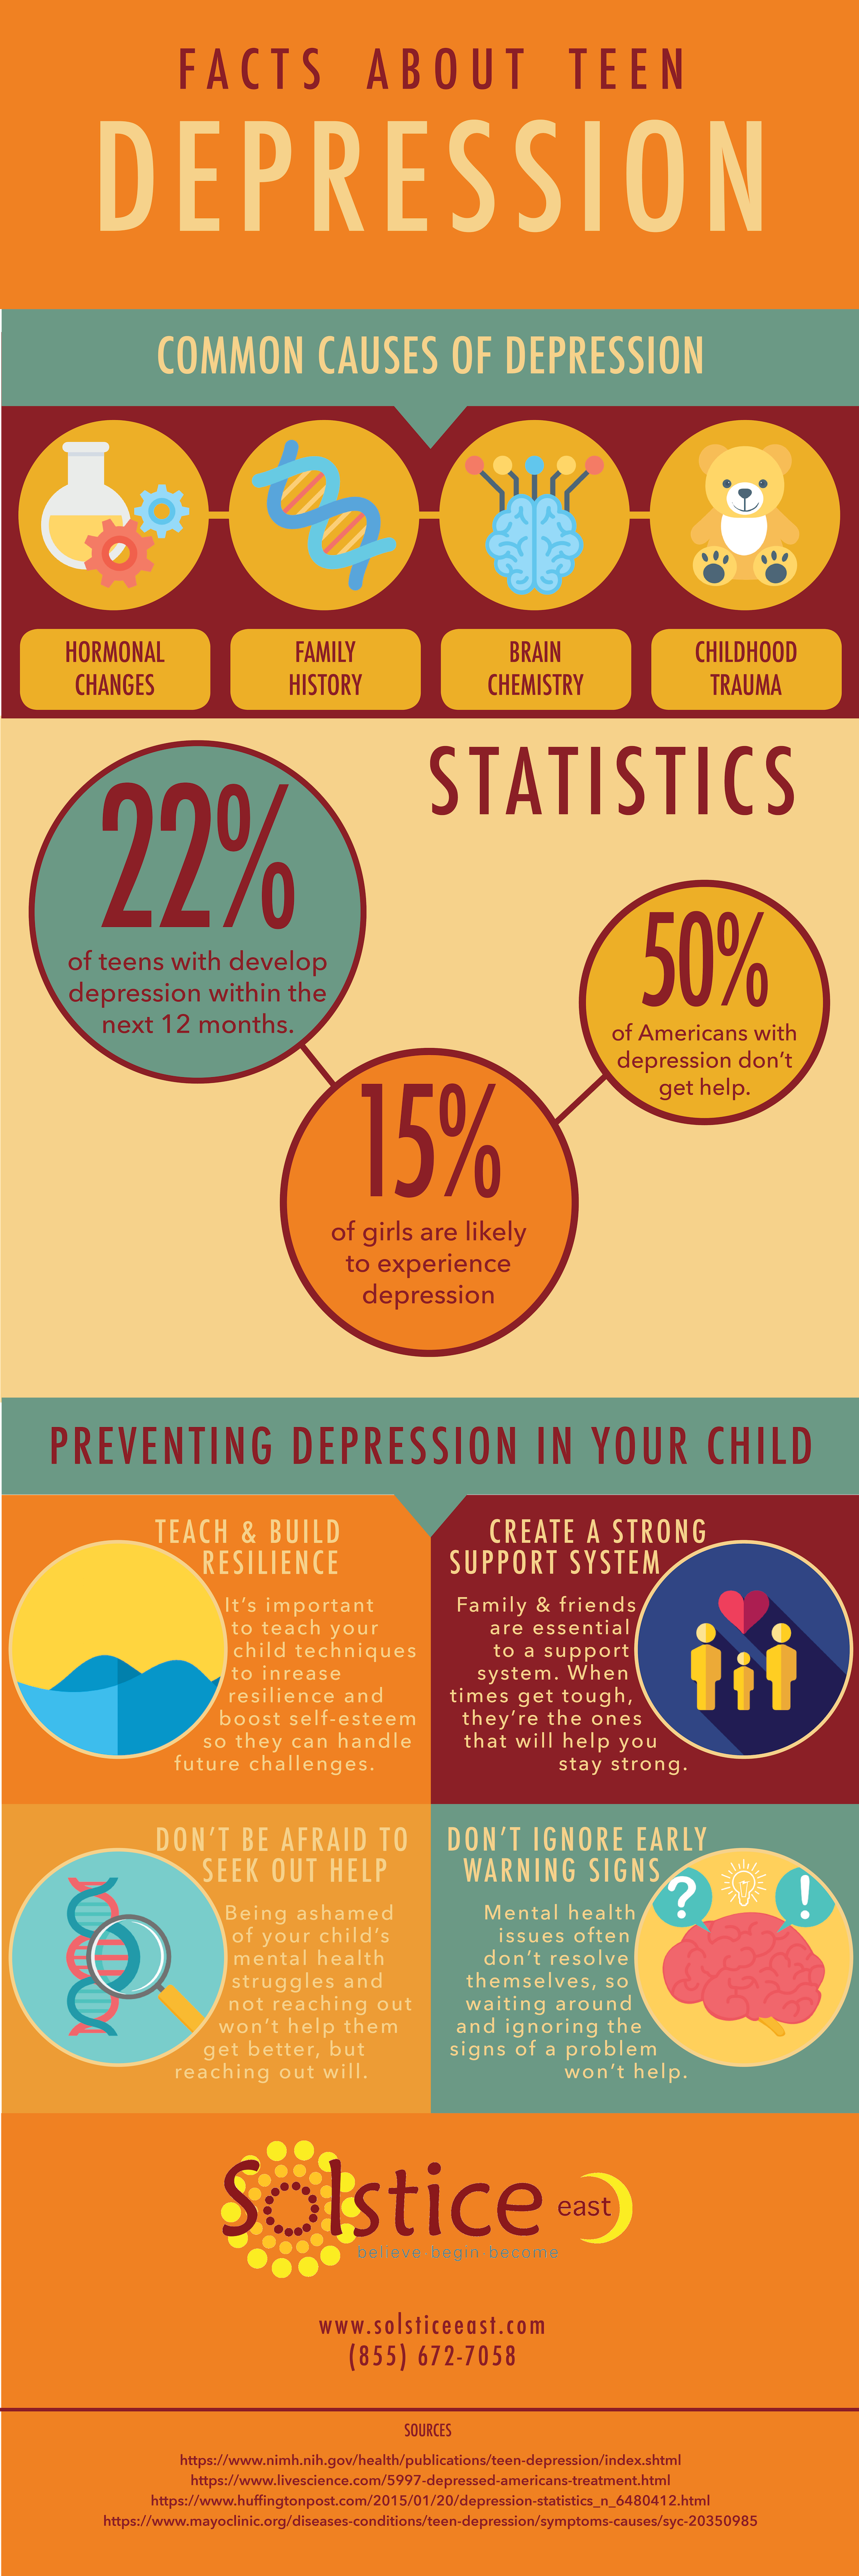 teen depression treatment centers